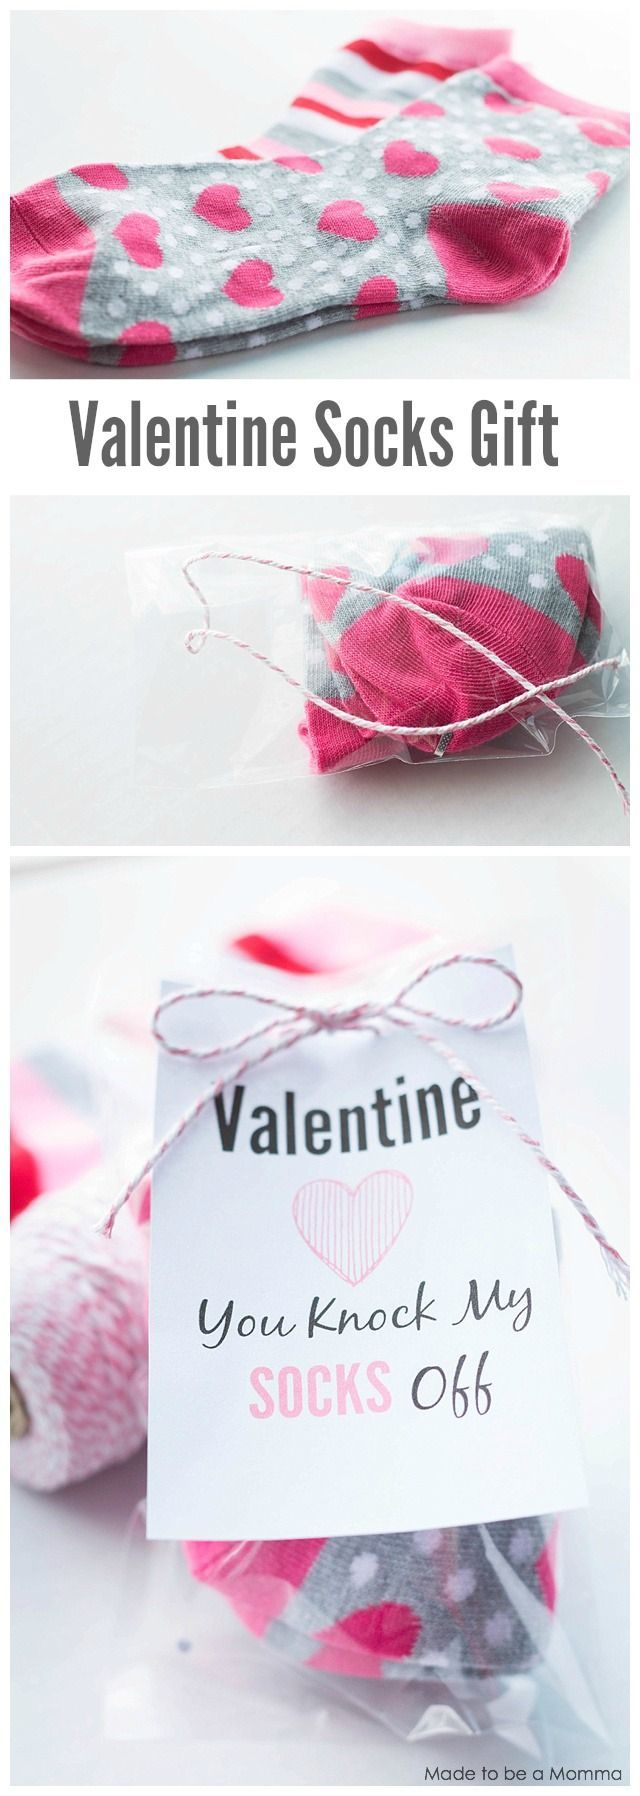 Valentine Socks Gift Idea. Get the free printable at madetobeamomma.com! | DIY Valentine's Day Gift